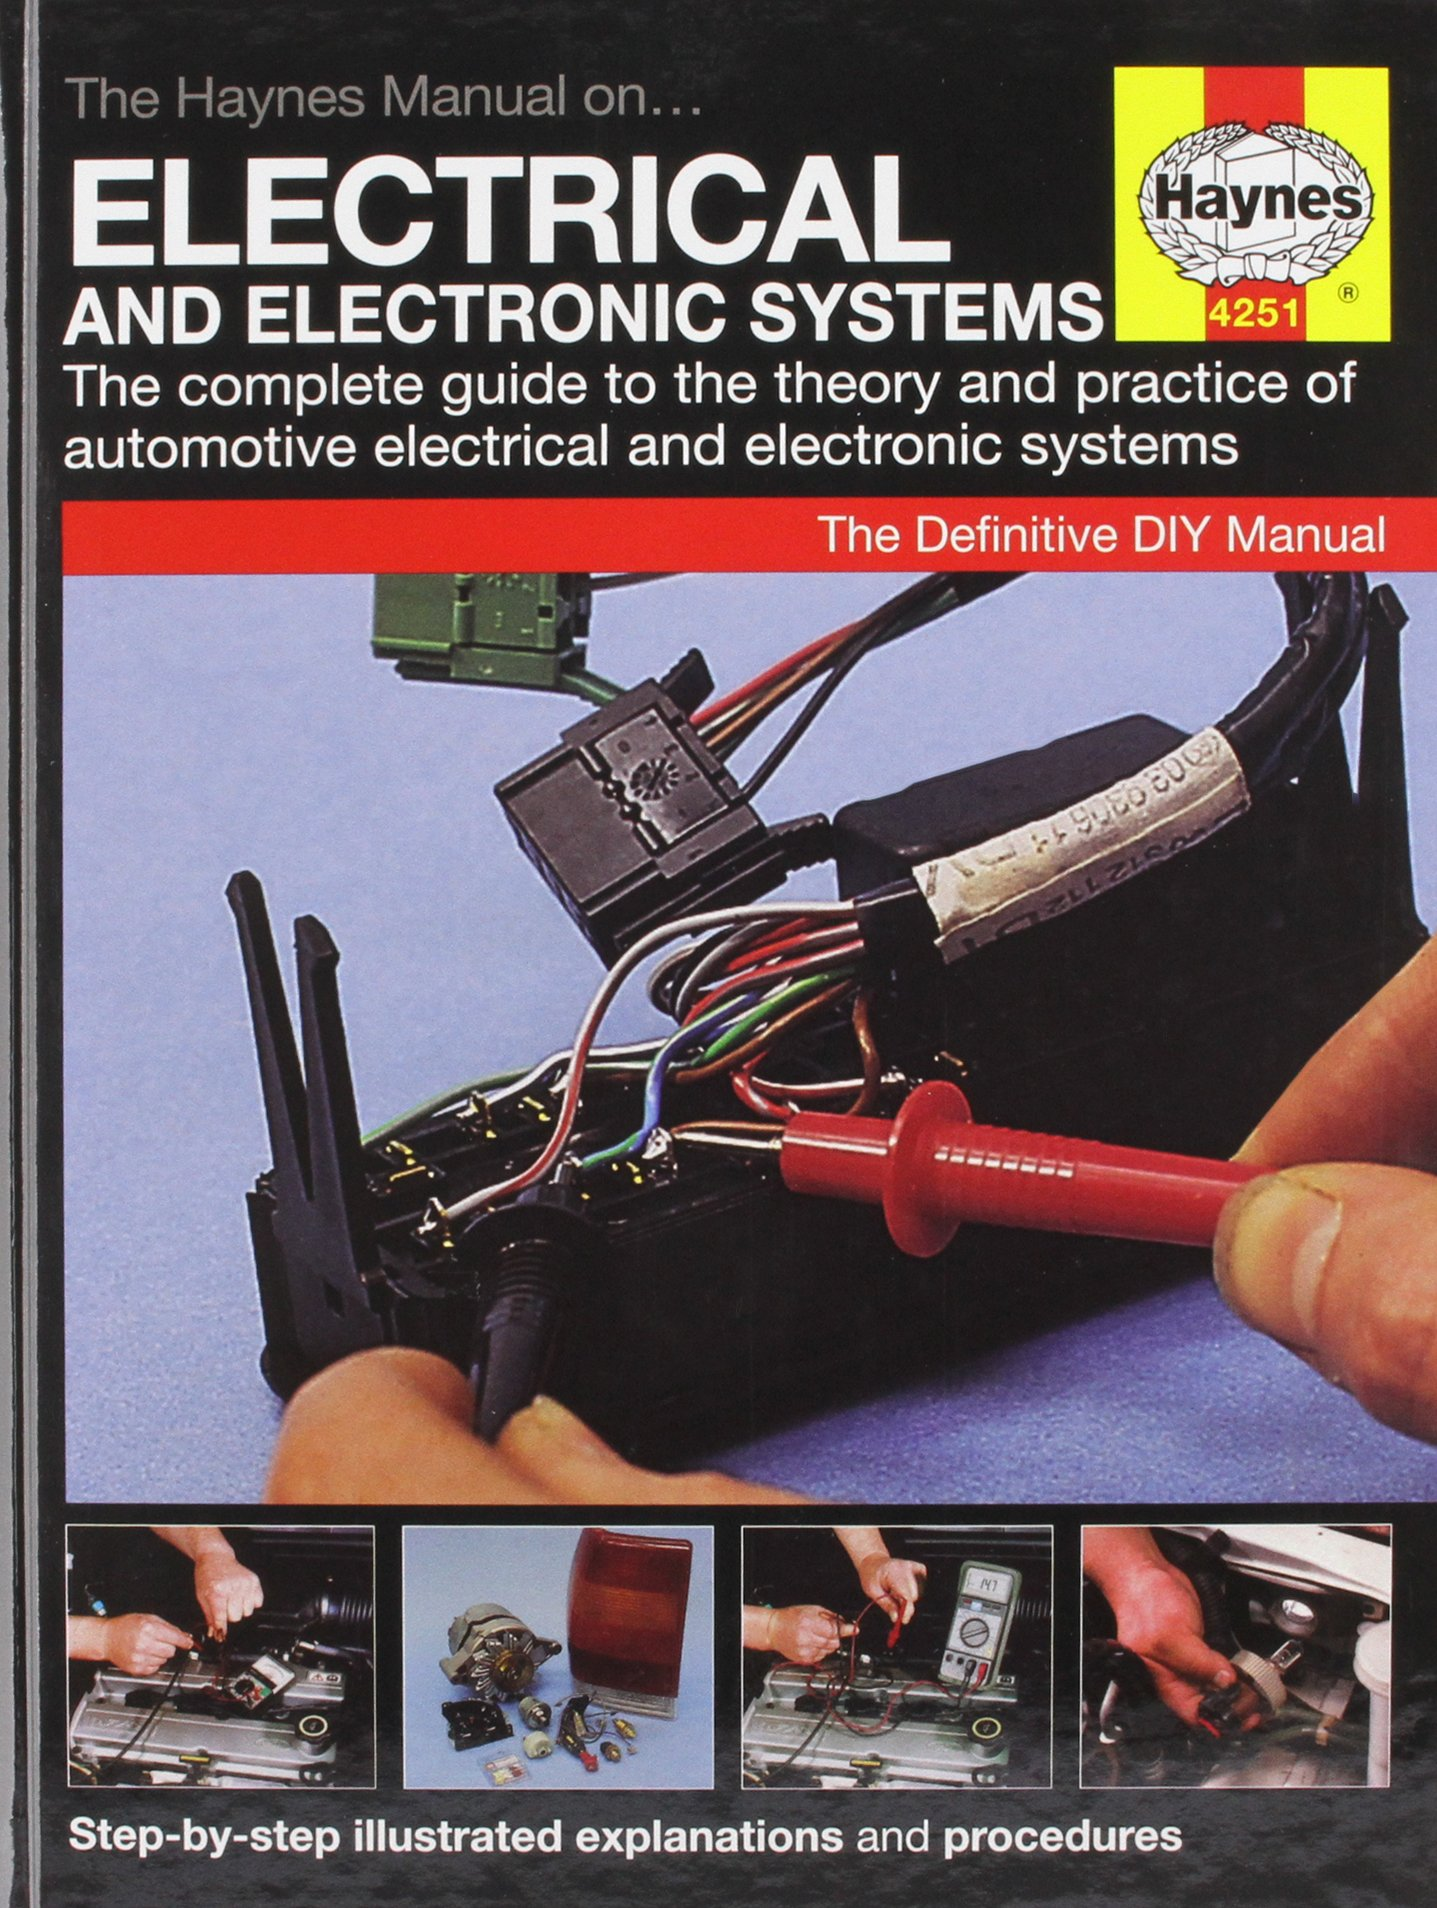 The Haynes Manual on Electrical and Electronic Systems: Amazon.co.uk: Anon:  9781844252510: Books